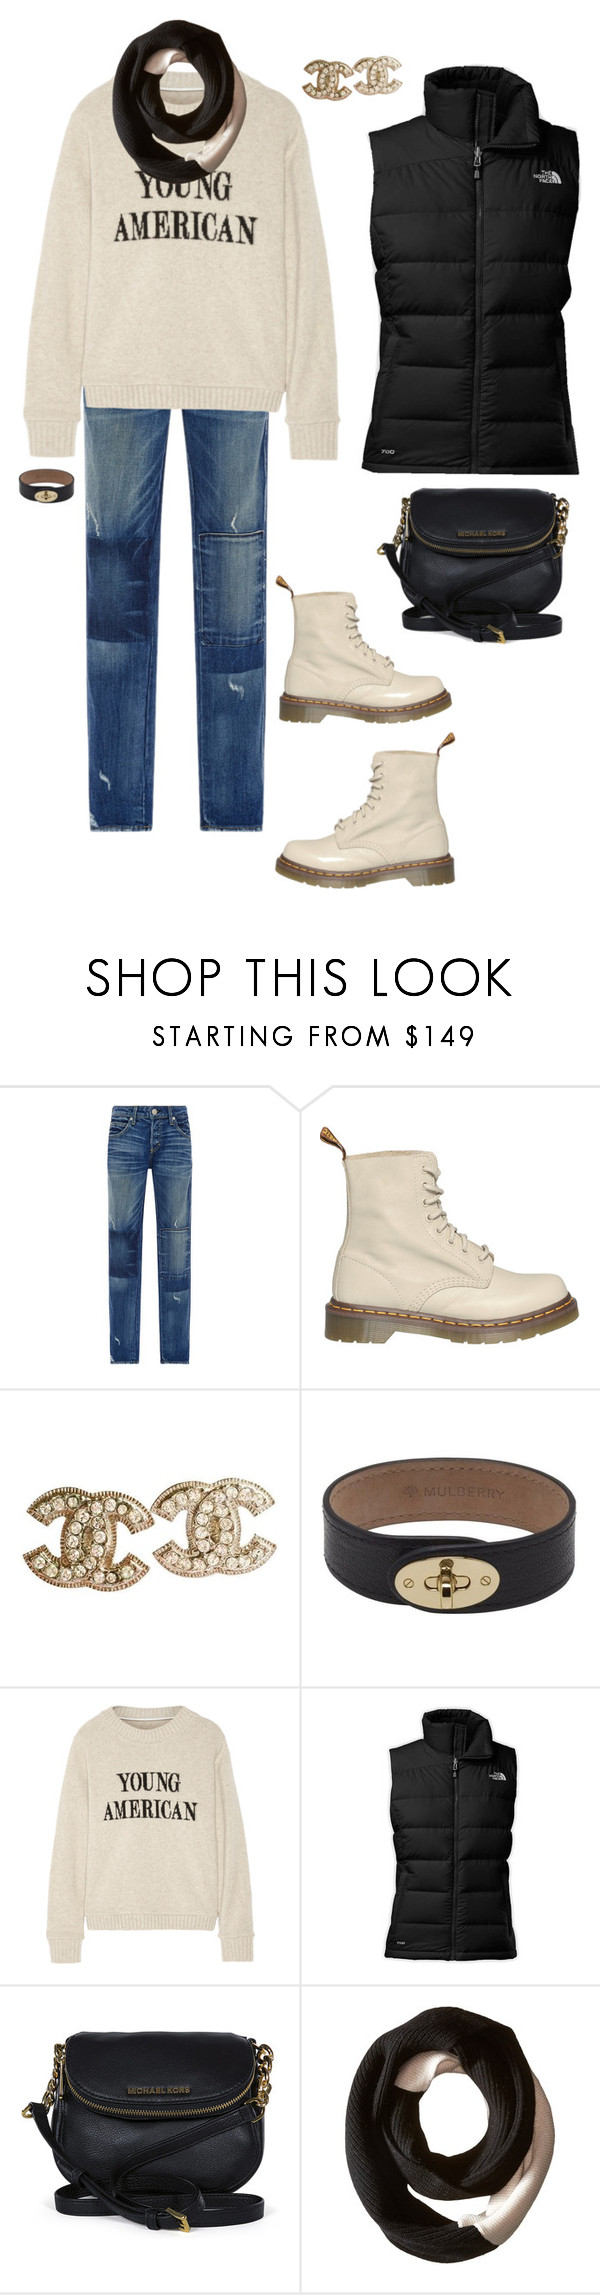 """""""Errands"""" by ccoss on Polyvore featuring AMO, Dr. Martens, Chanel, Mulberry, The Elder Statesman, The North Face, Michael Kors and SOREL"""